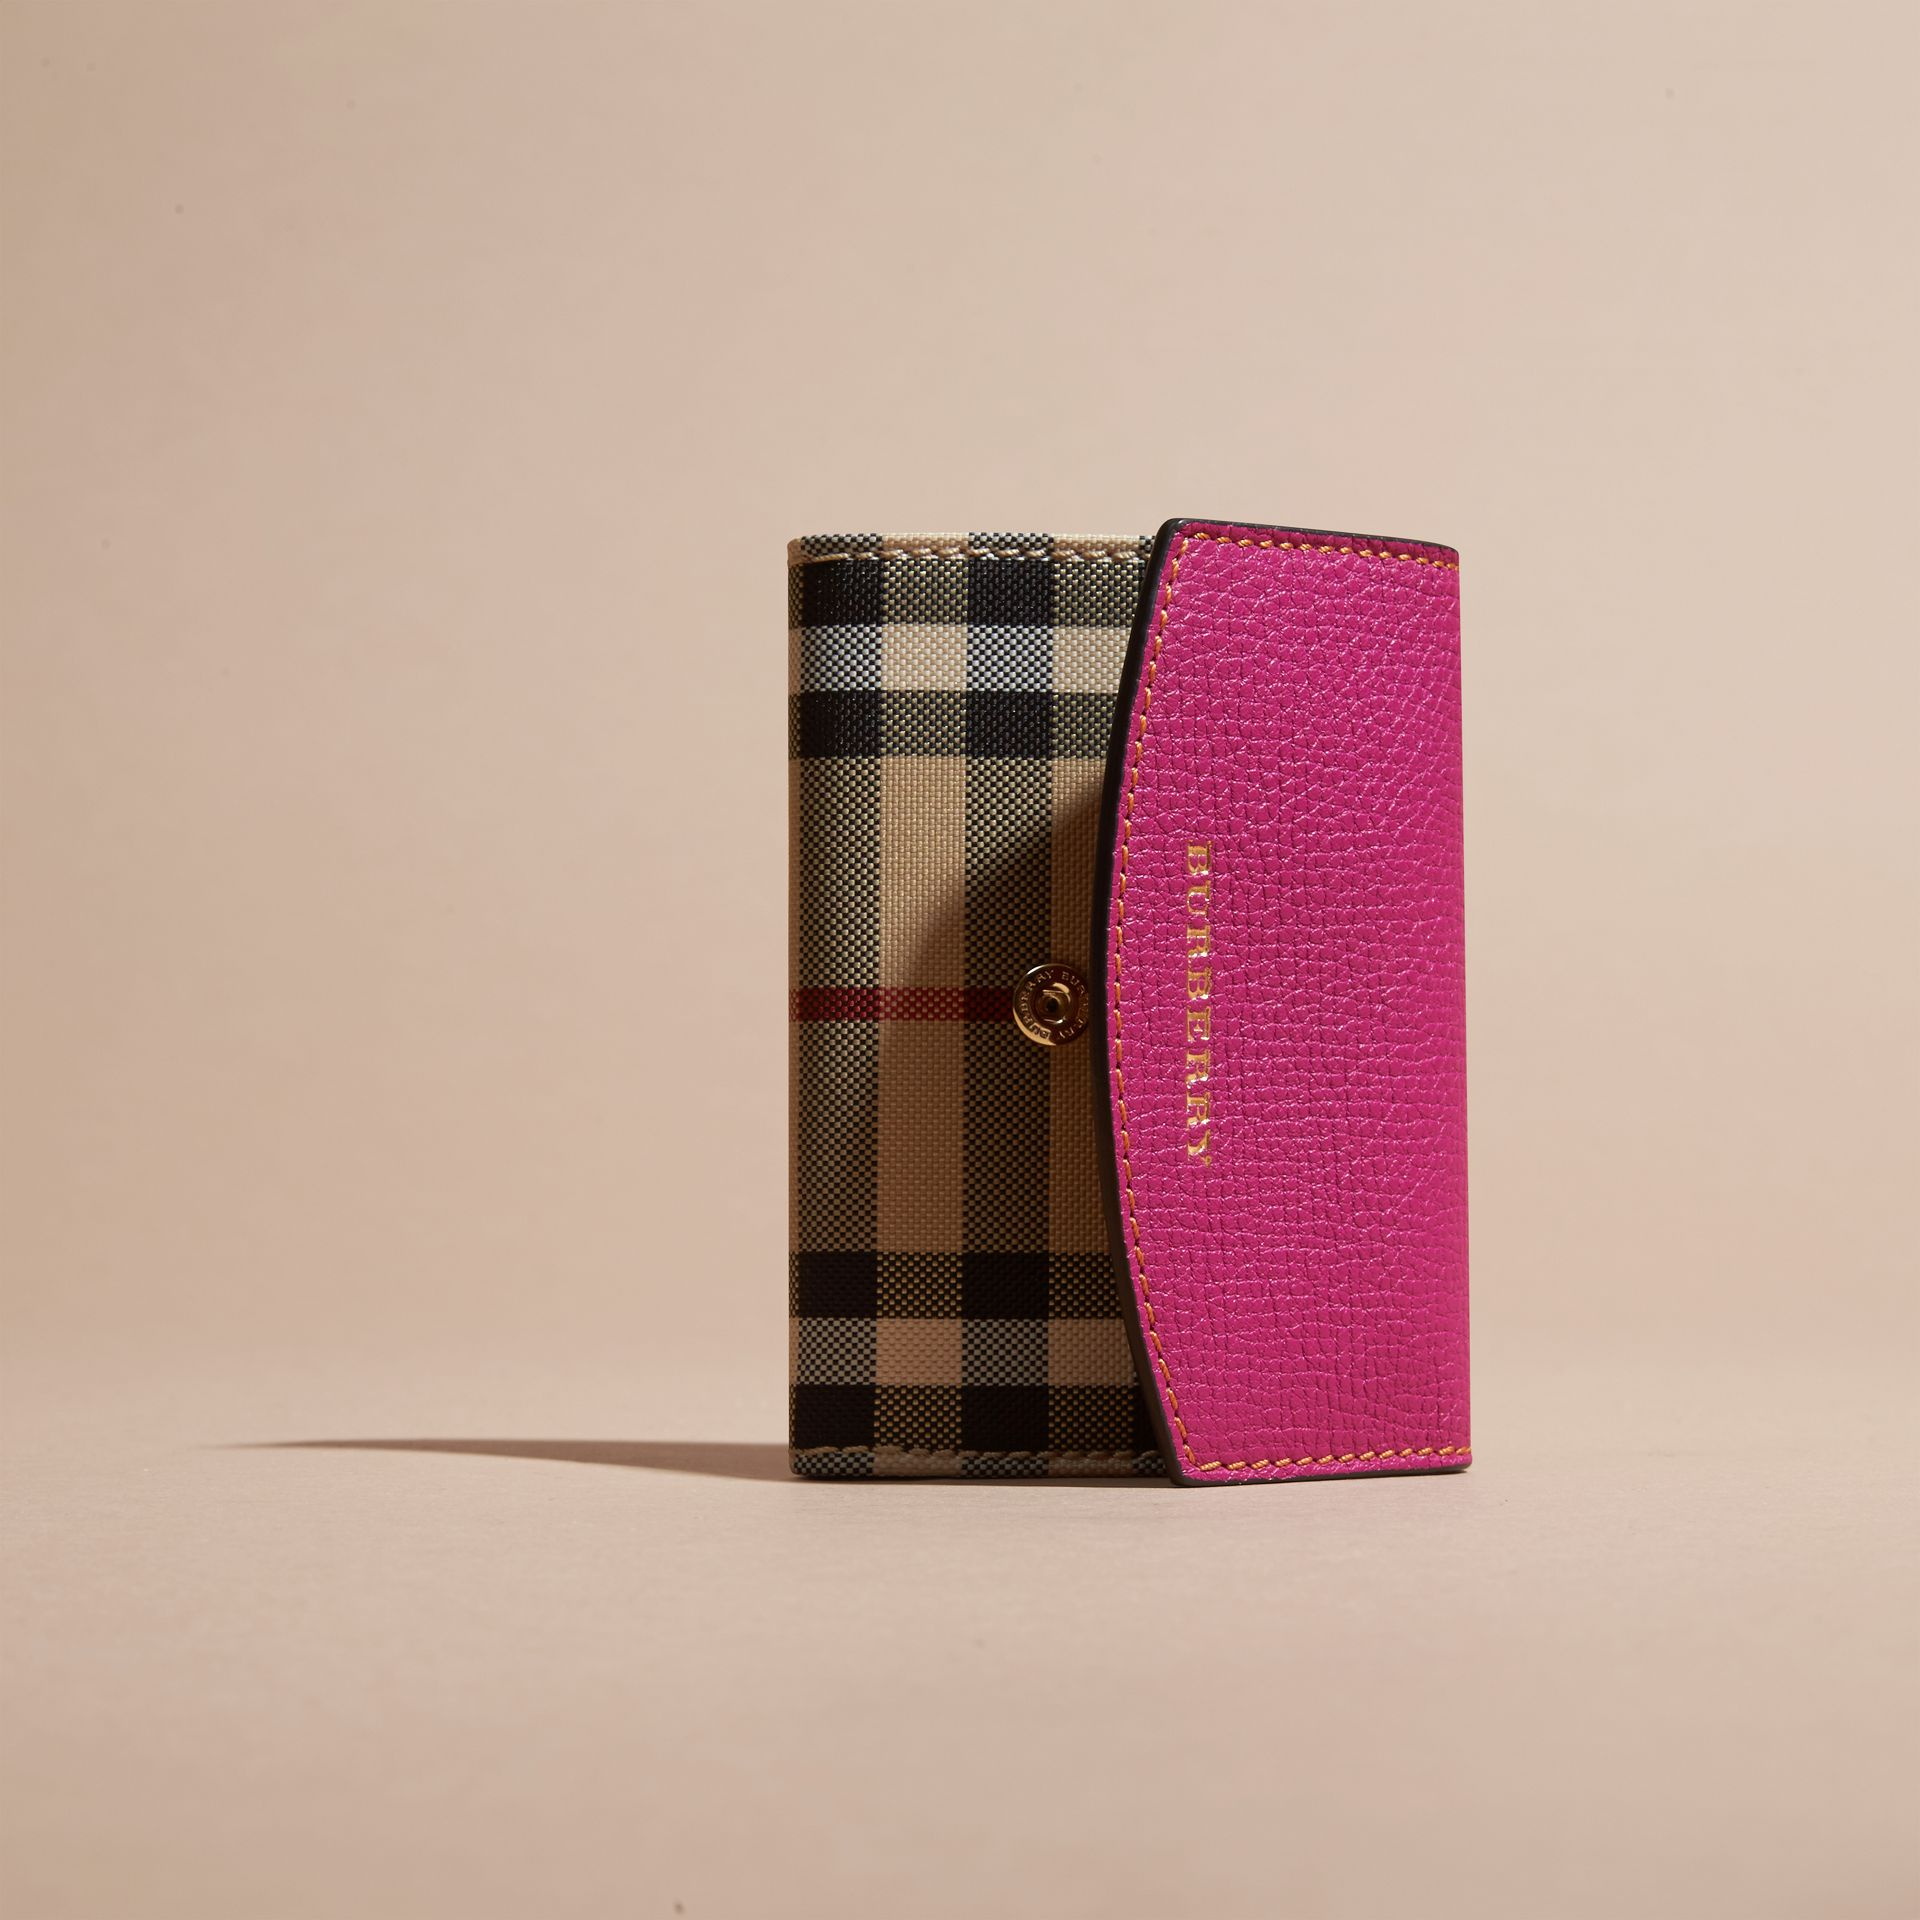 Brilliant fuchsia Horseferry Check and Leather Card Case Brilliant Fuchsia - gallery image 3